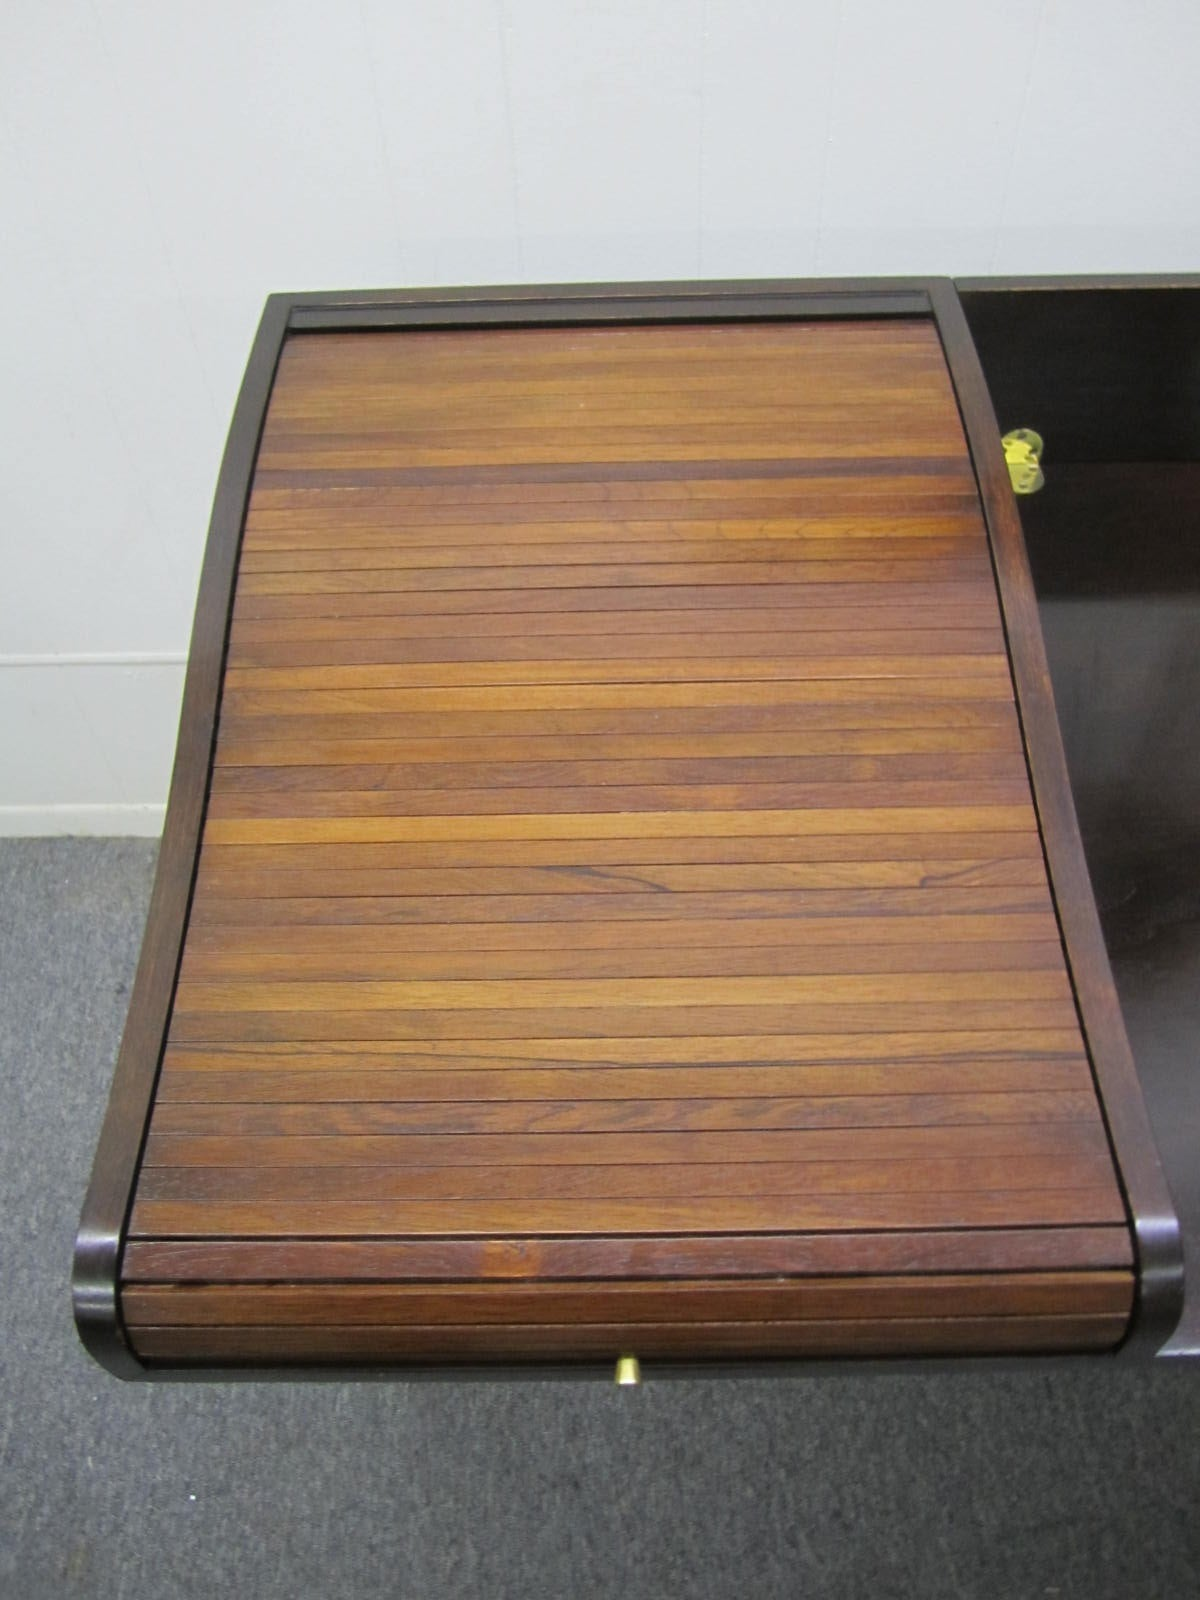 Excellent Rosewood Roll Top Desk by Edward Wormley for Dunbar Mid-Century Modern In Good Condition For Sale In Medford, NJ